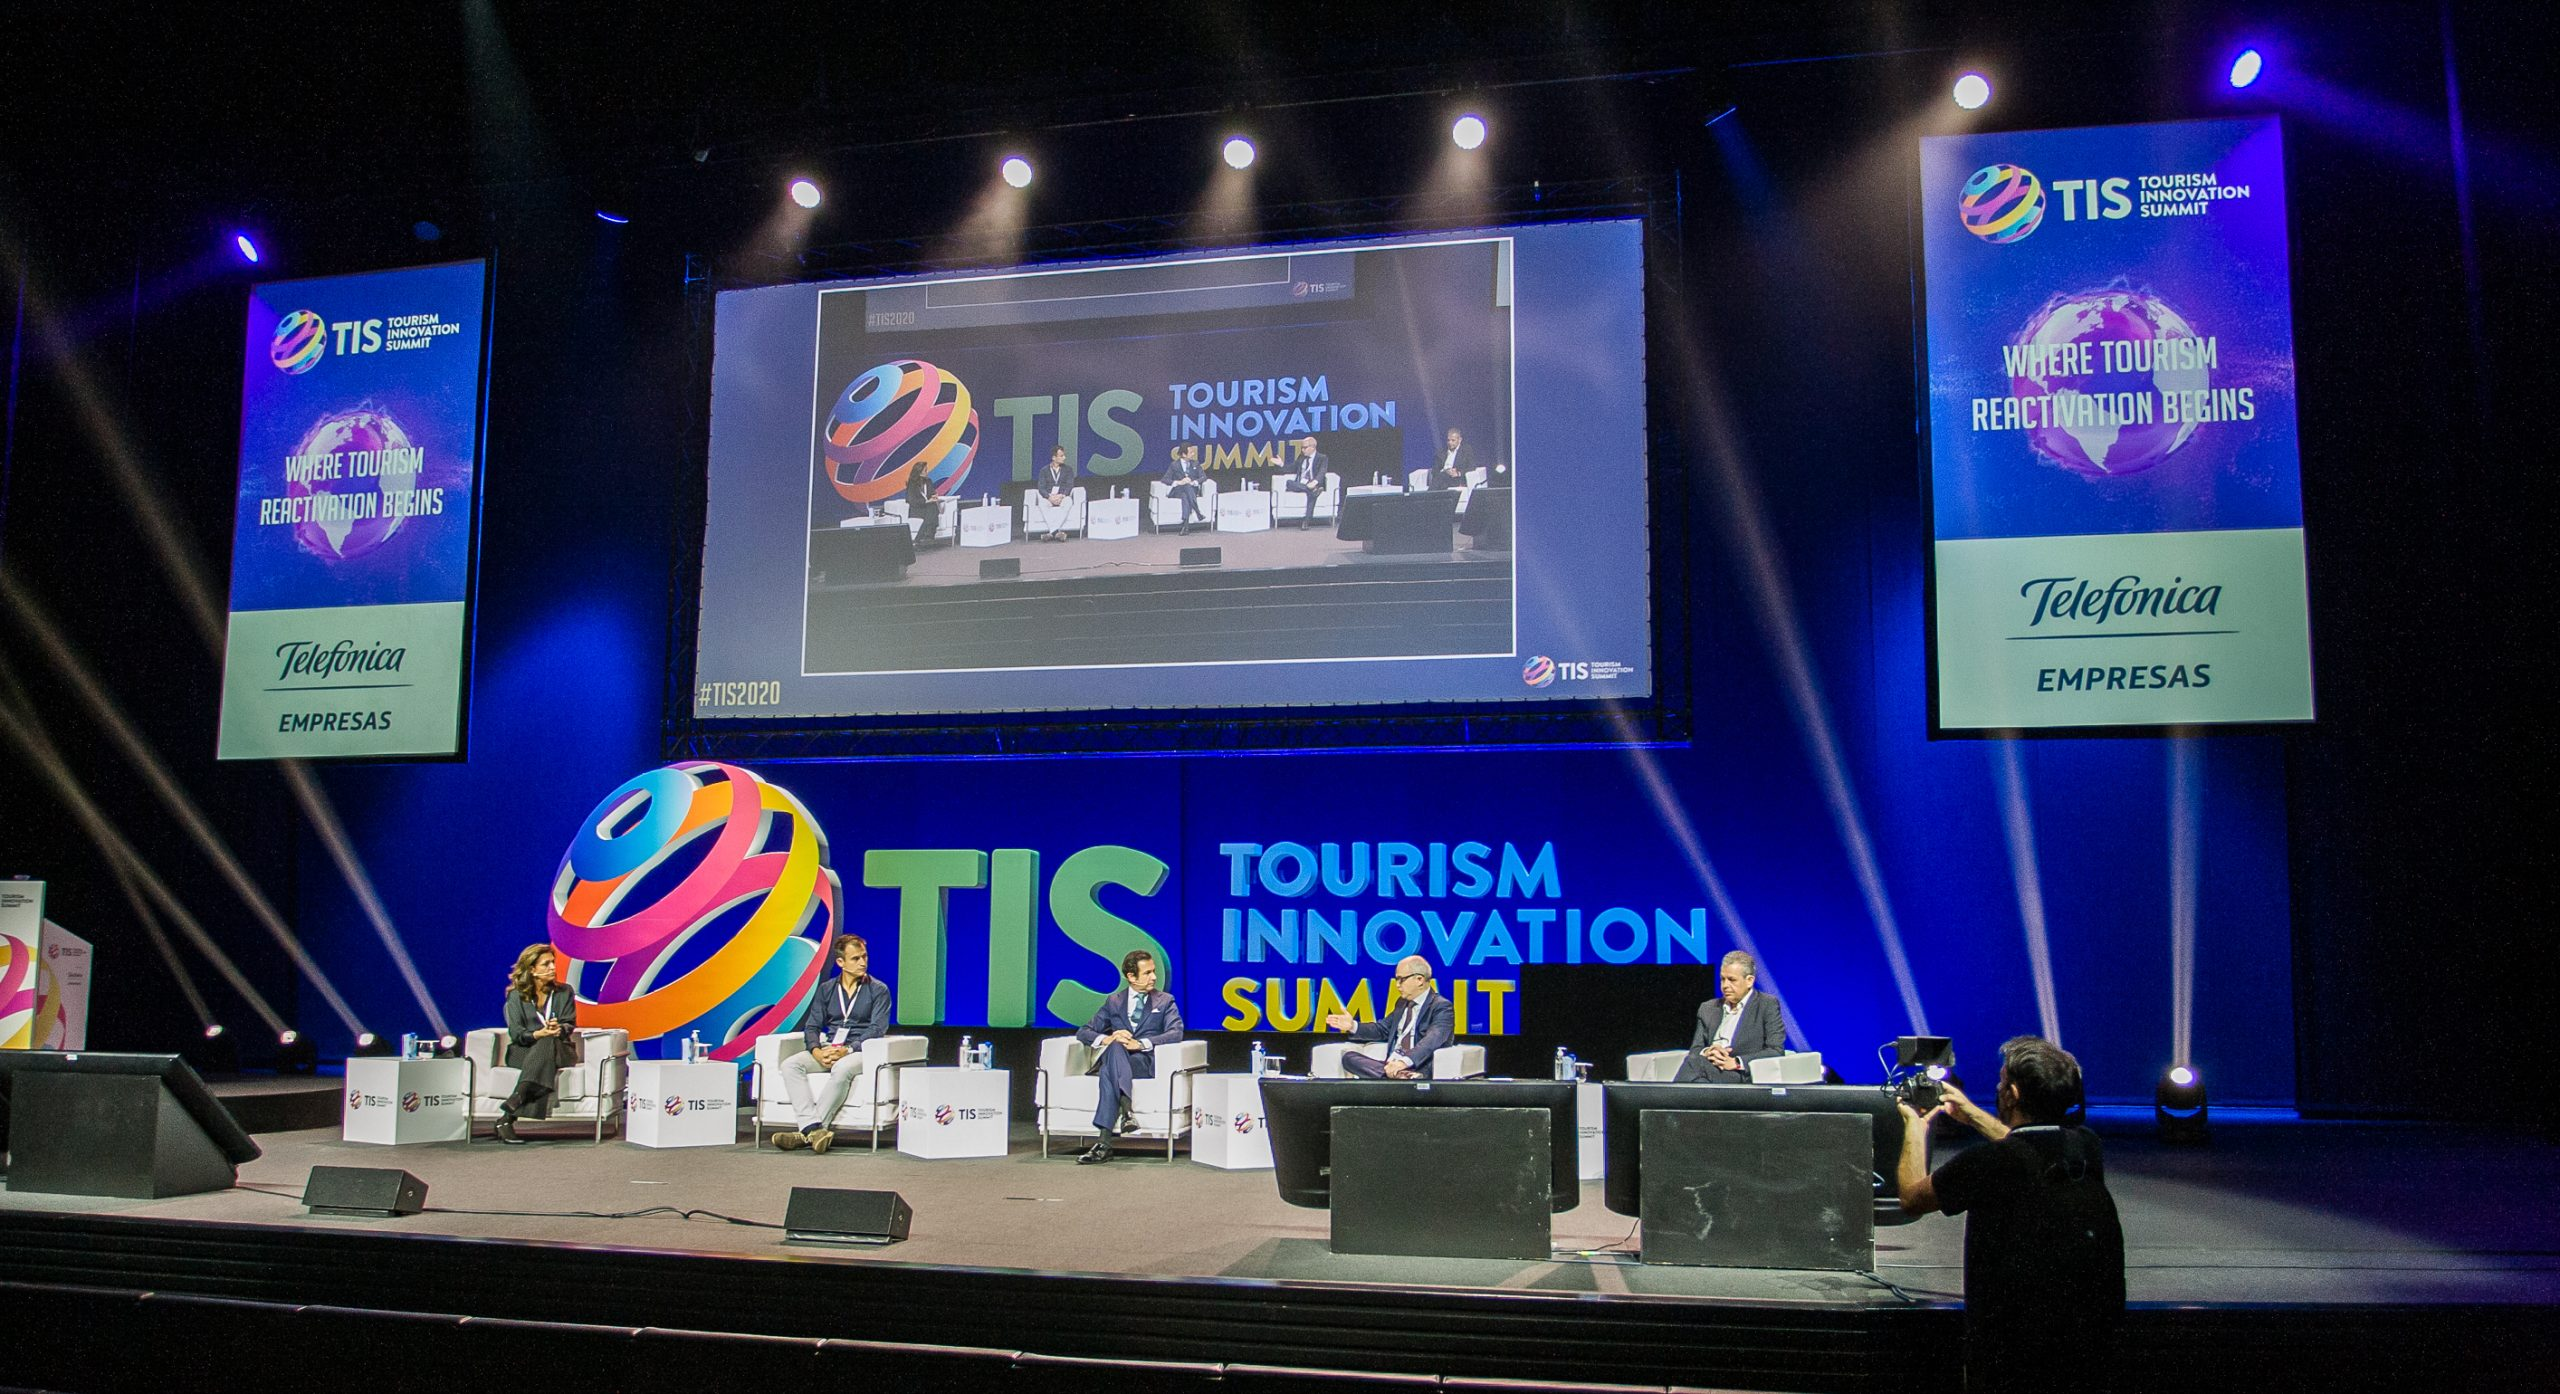 Covid passport and technology: key drivers to reactivate tourism